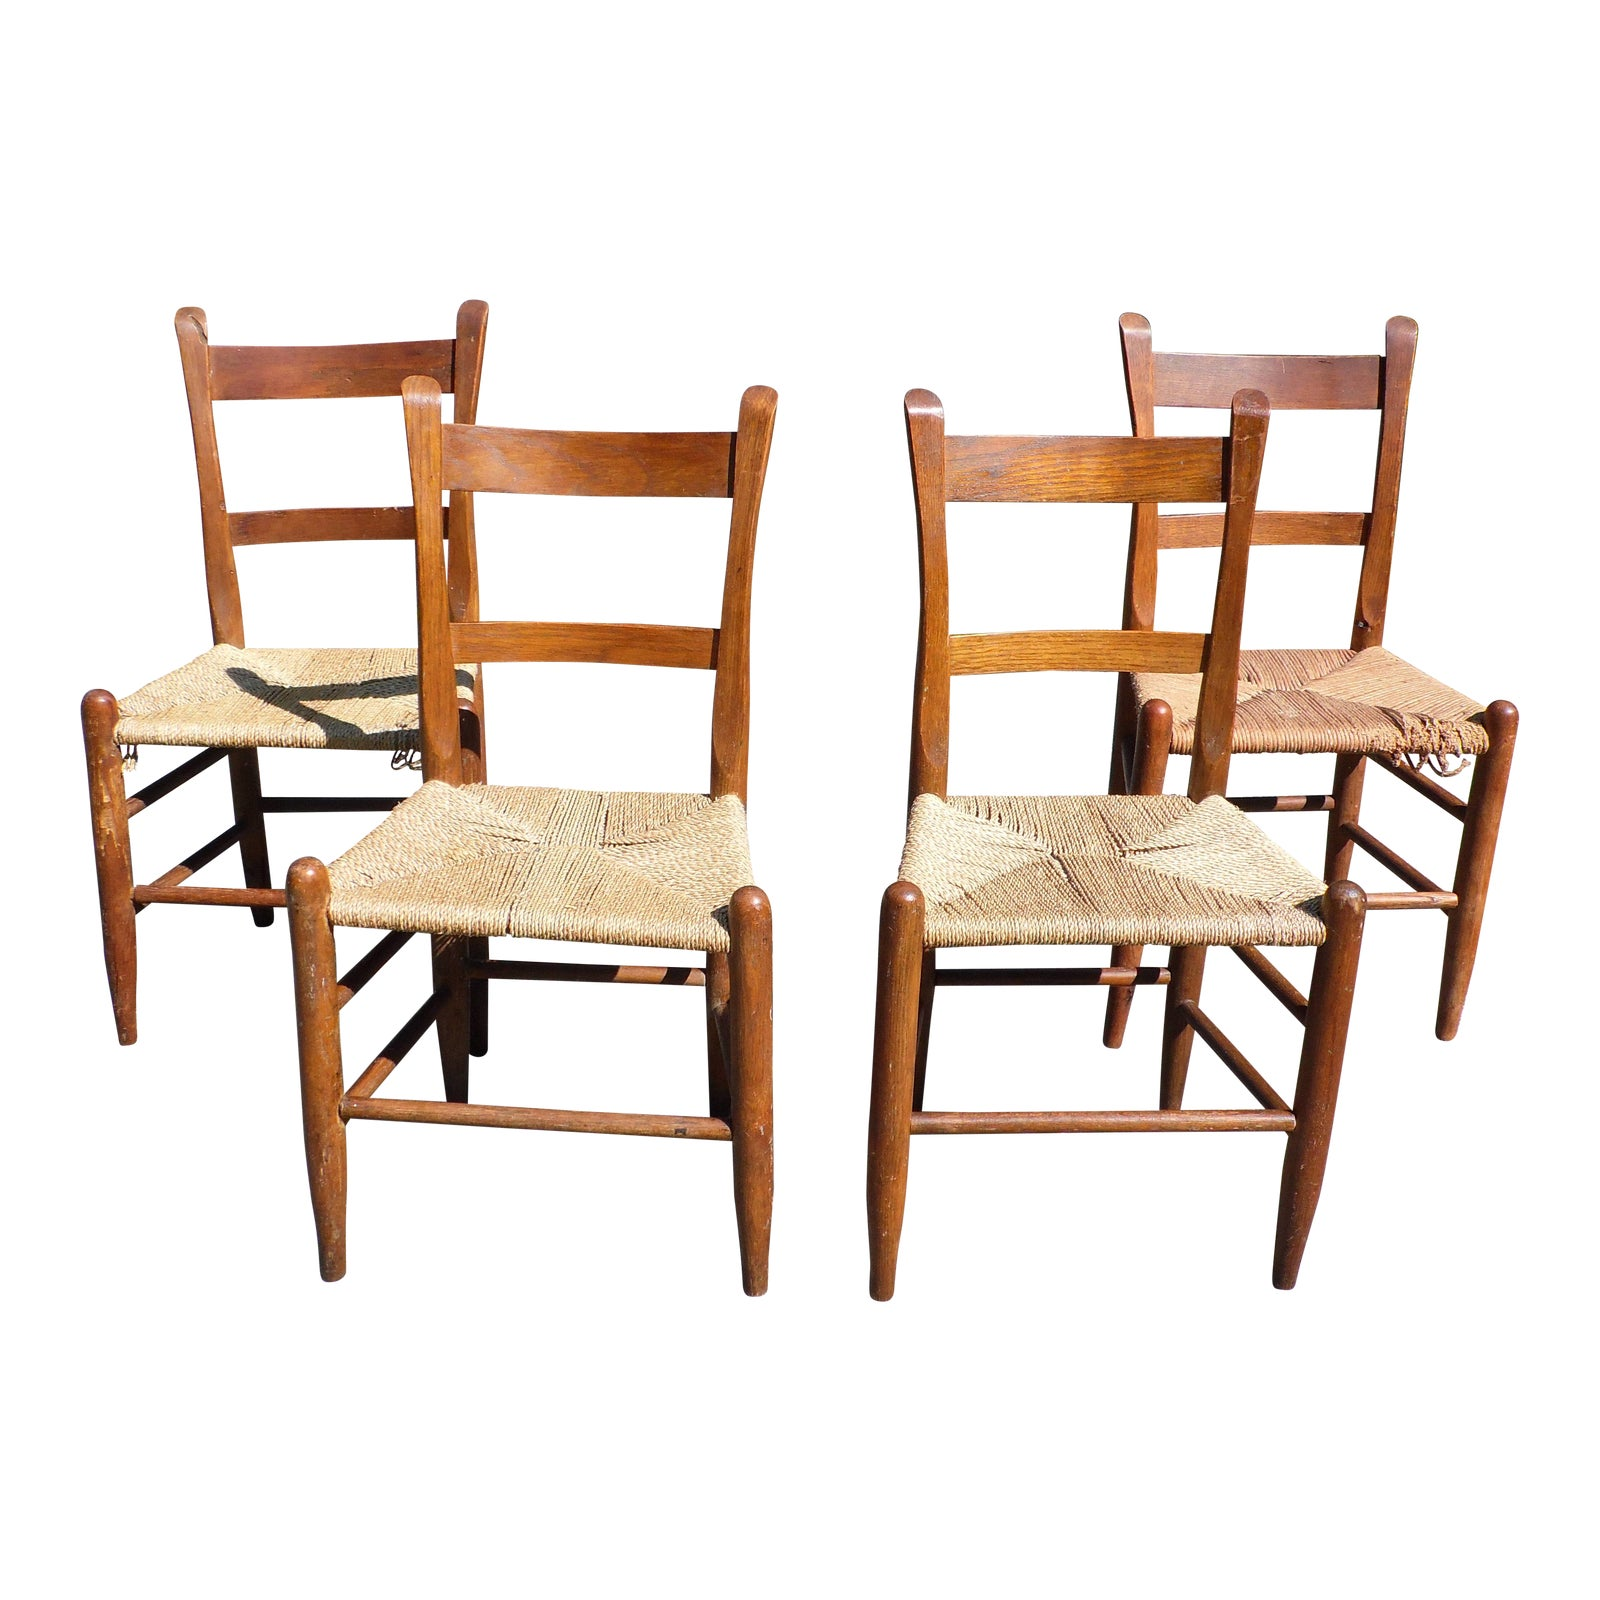 Superb Antique Primitive Rustic Thumb Back Slat Dining Chairs Rope Seats Set Of 4 Theyellowbook Wood Chair Design Ideas Theyellowbookinfo